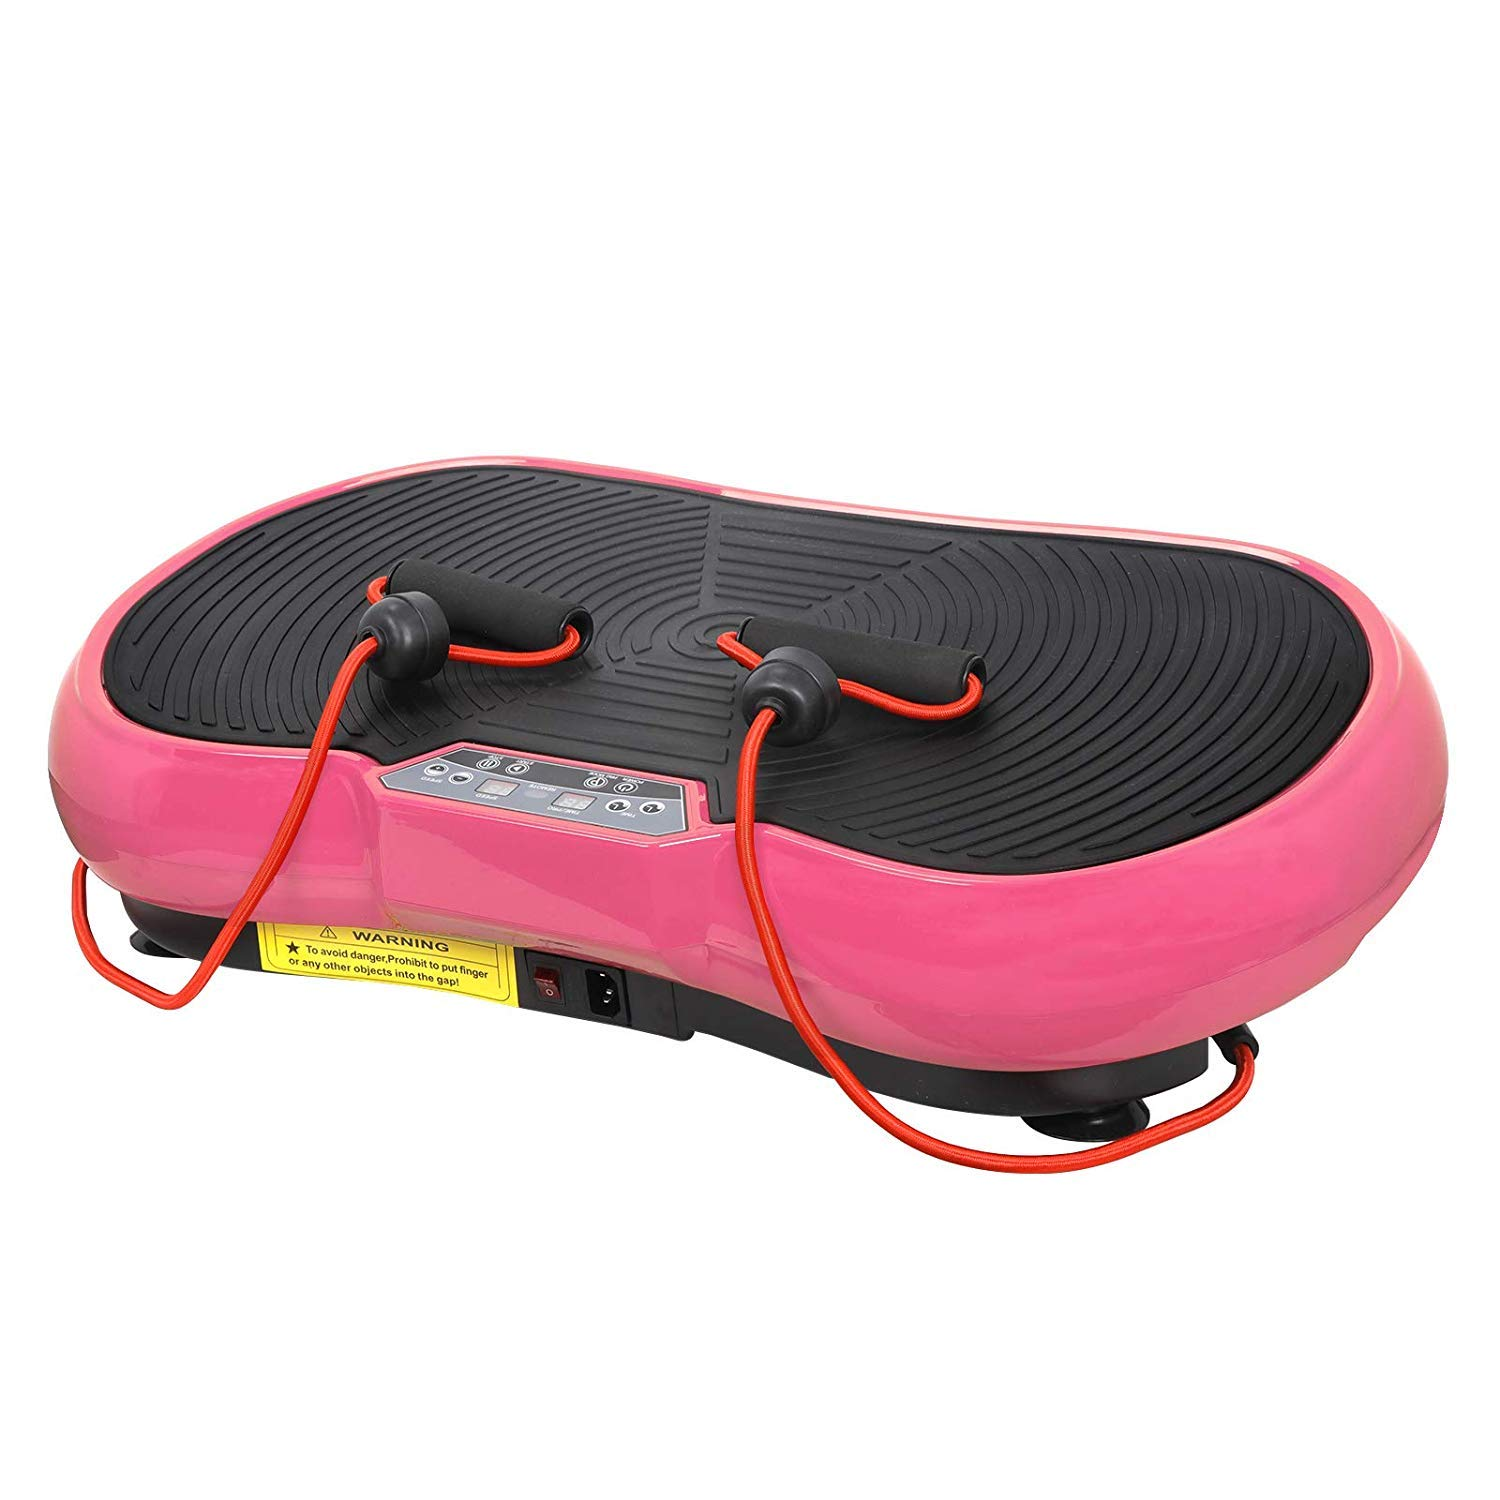 HomGarden Vibration Platform Fitness Vibration Plates Workout Massage Machine, Full Body Crazy Exercise Fit Equipment for Weight Loss w/Bluetooth by HomGarden (Image #5)